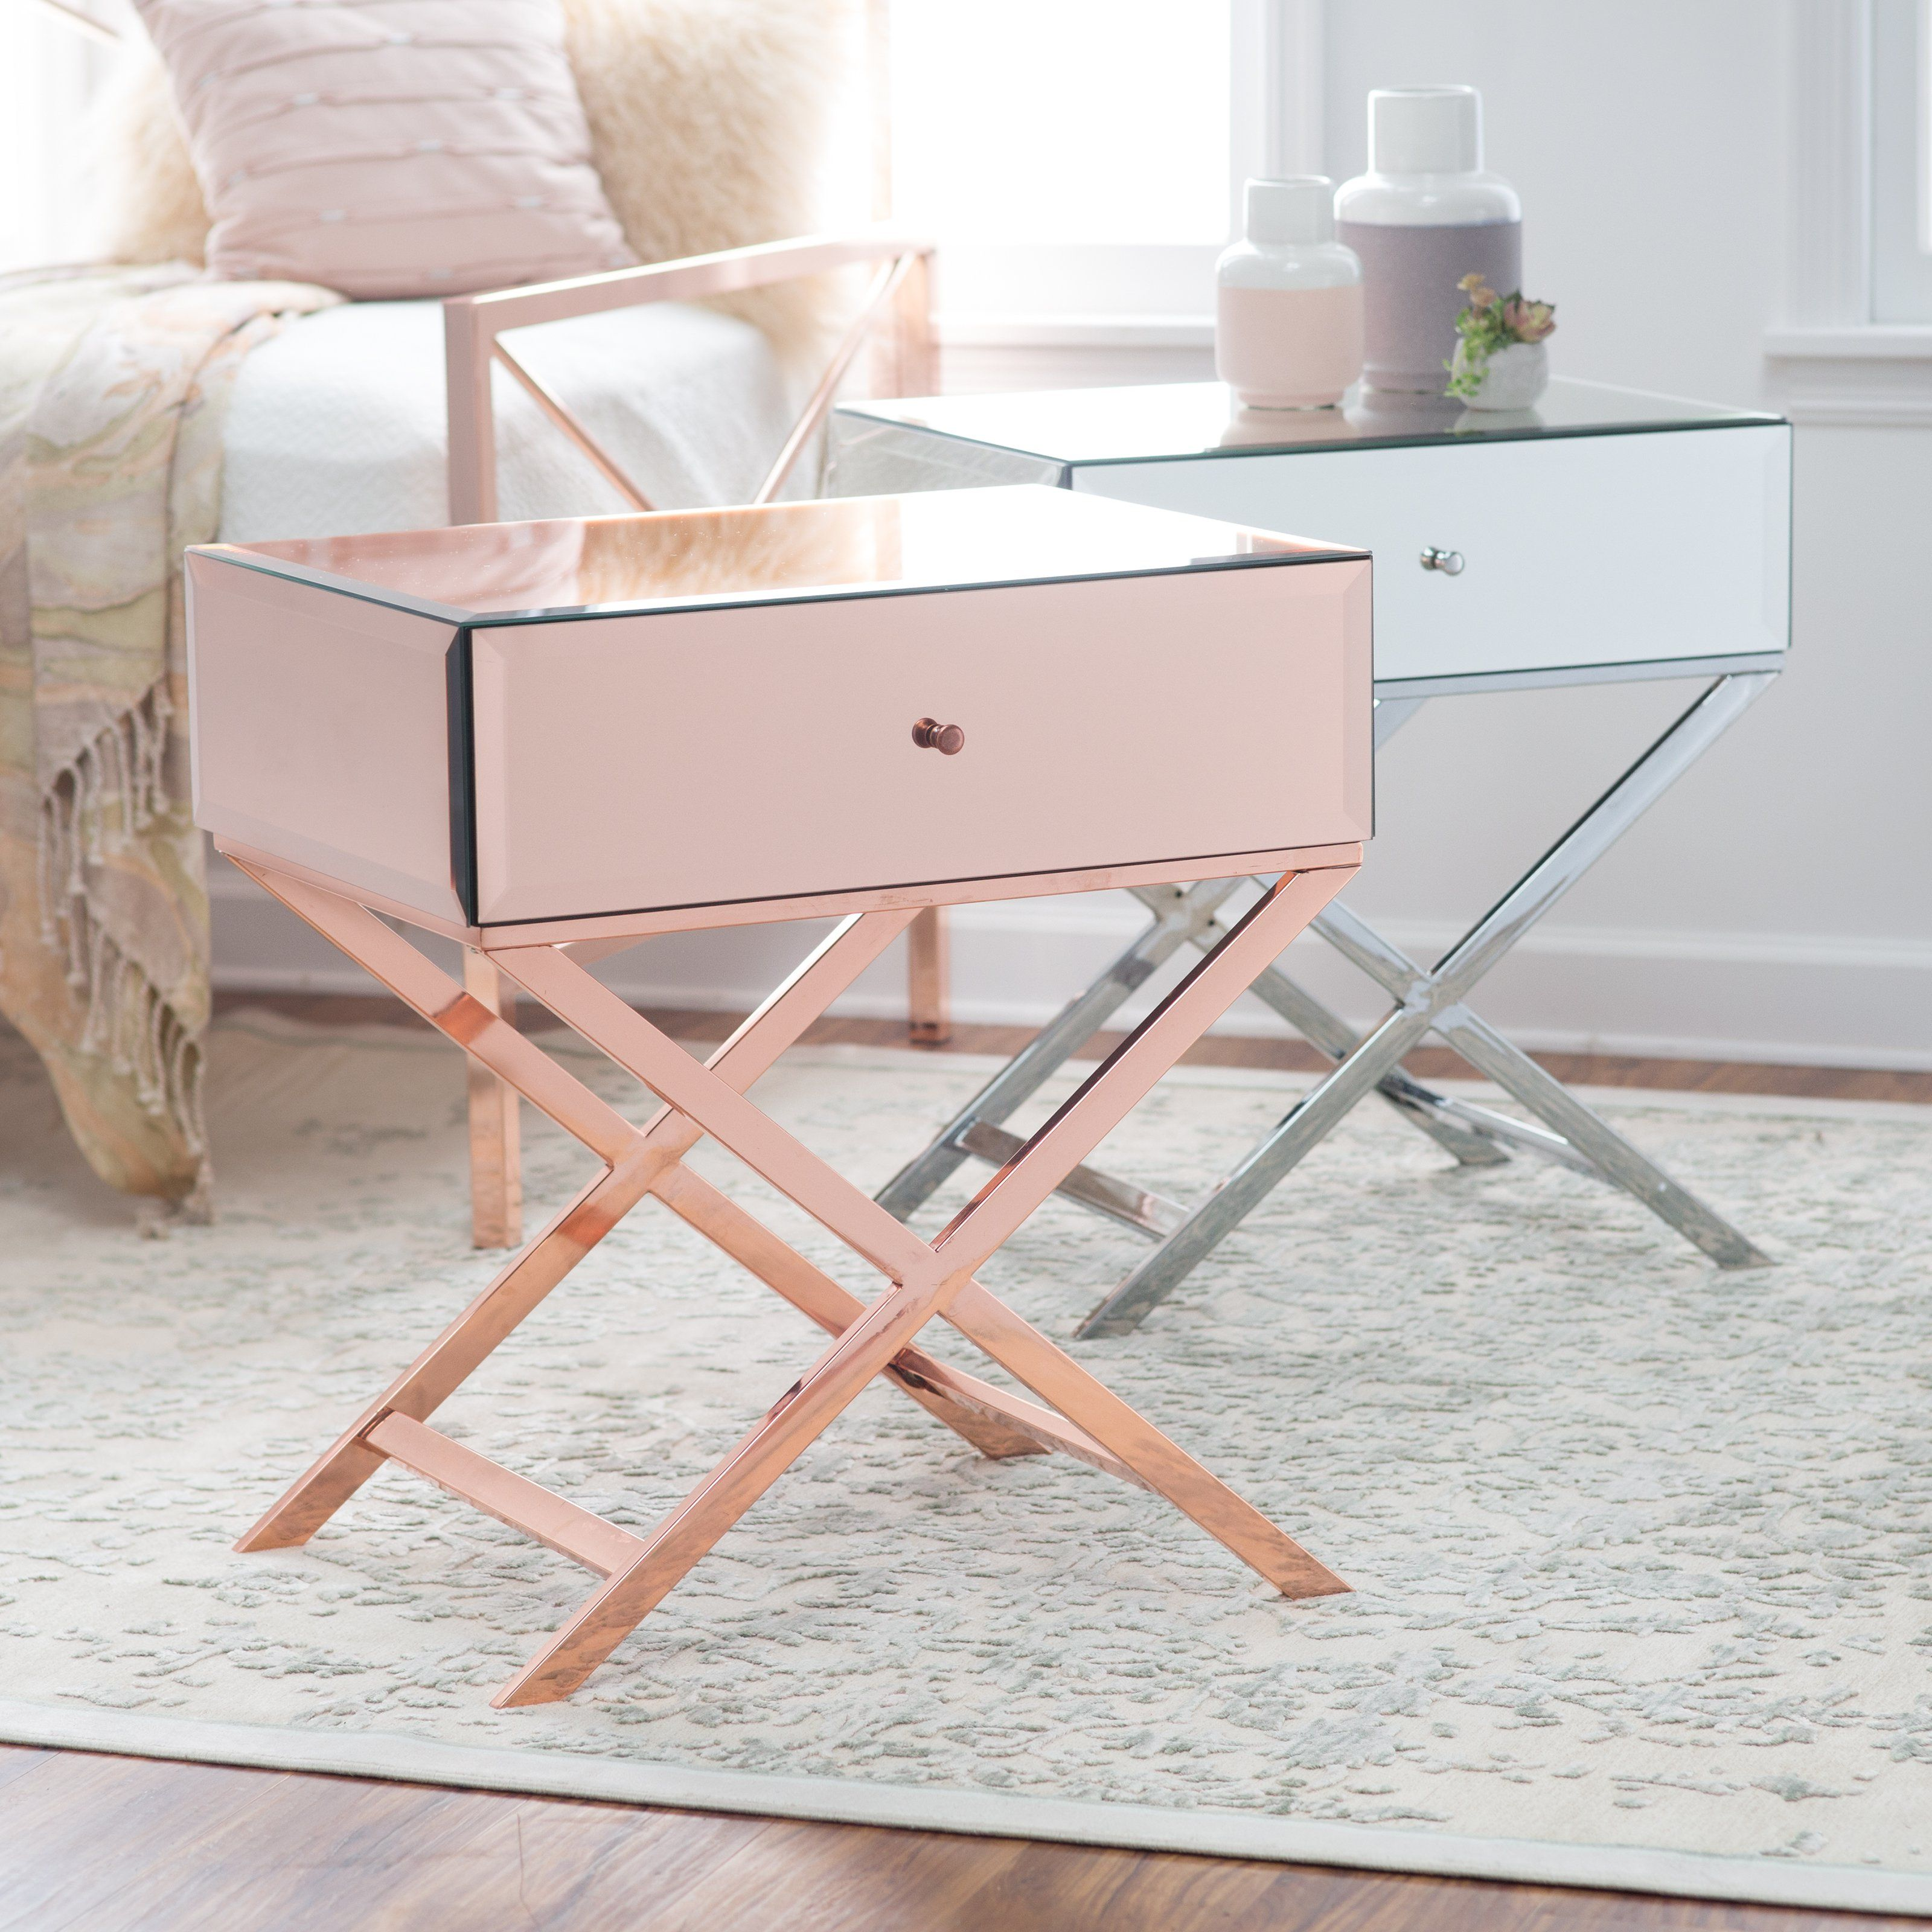 Belham Living Reflection Campaign Table   End Tables At Hayneedle